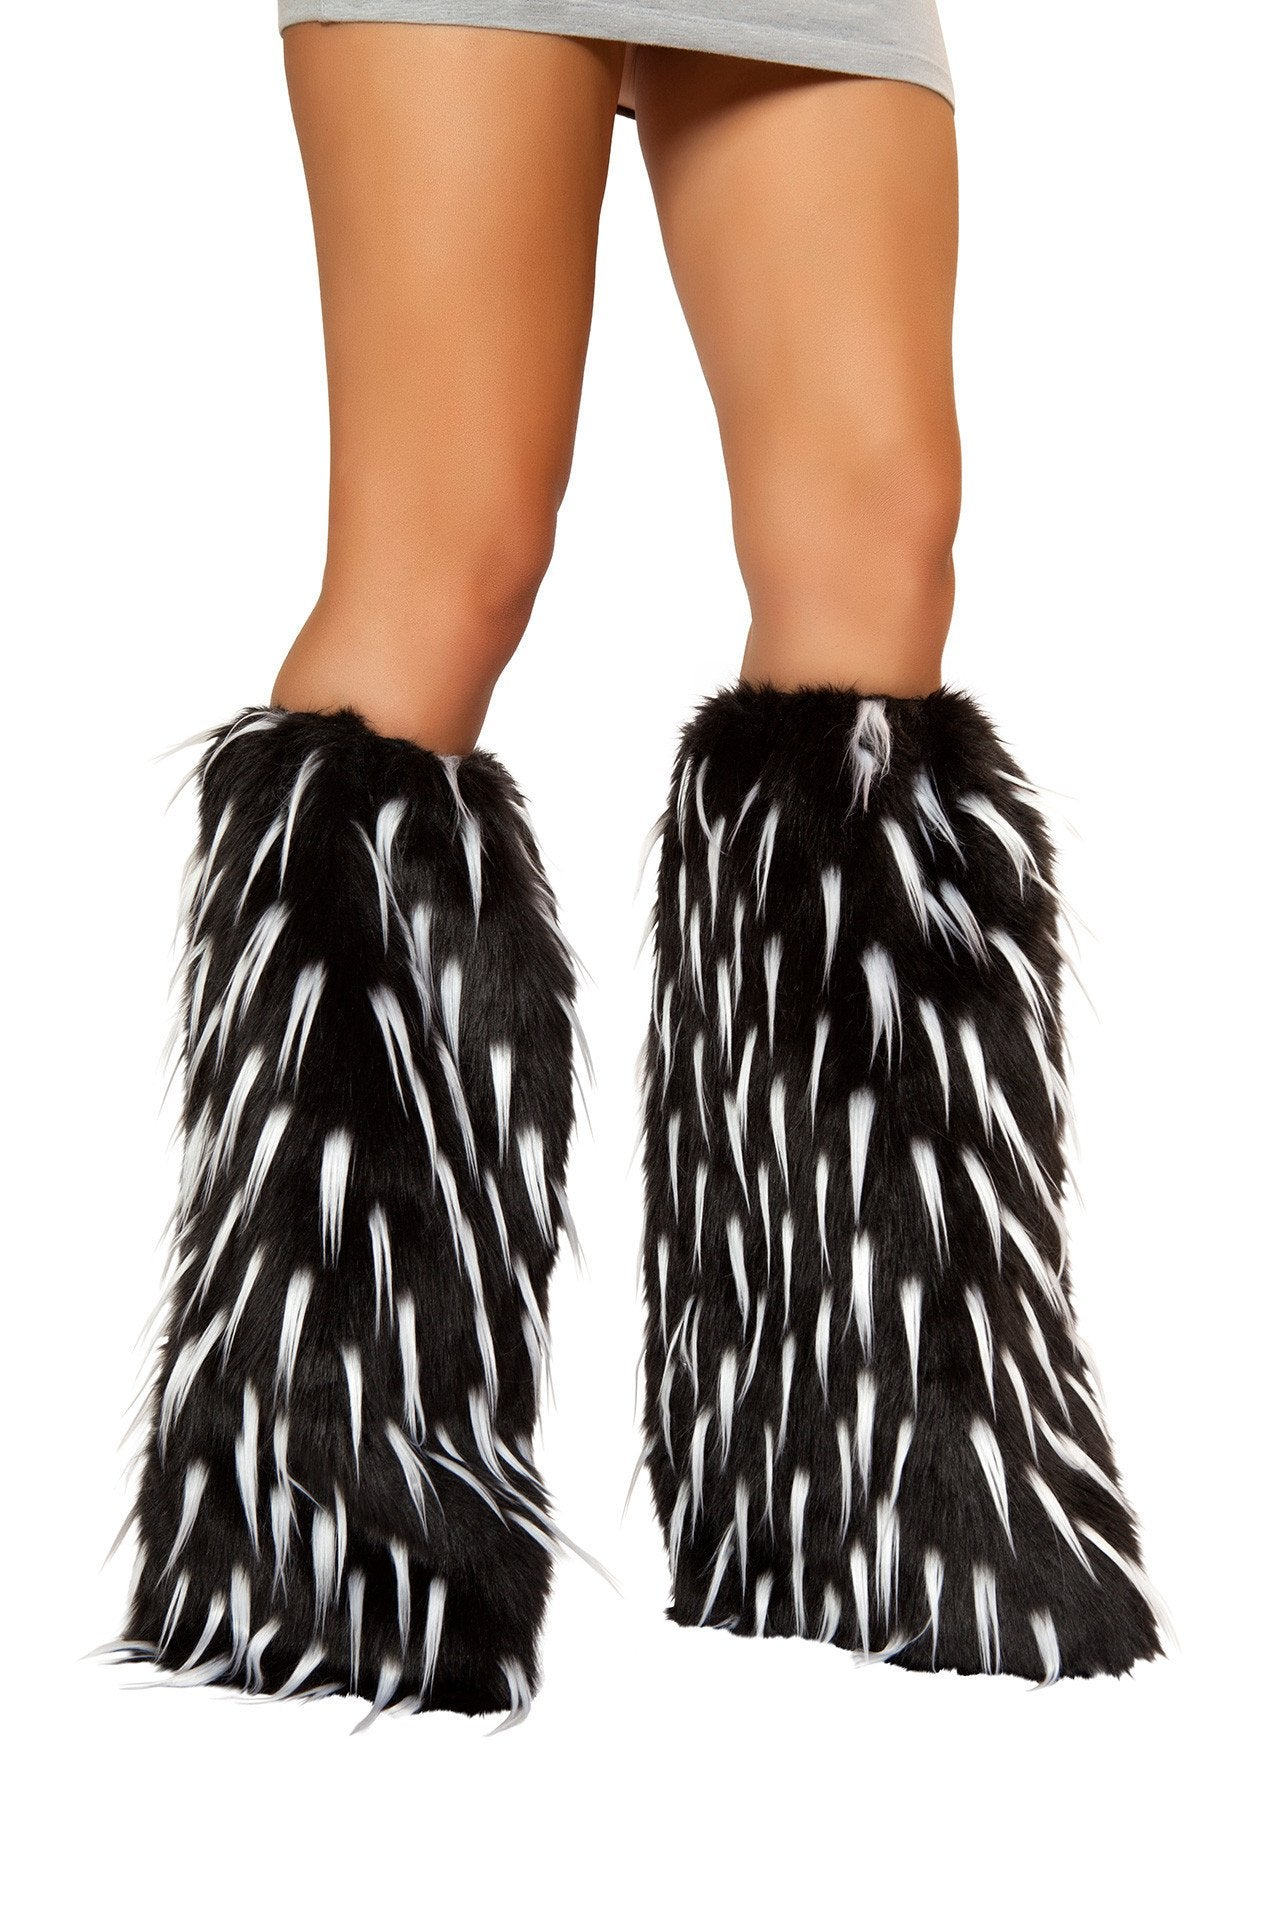 White and Black Spiked Fluffies - Rave Rebel